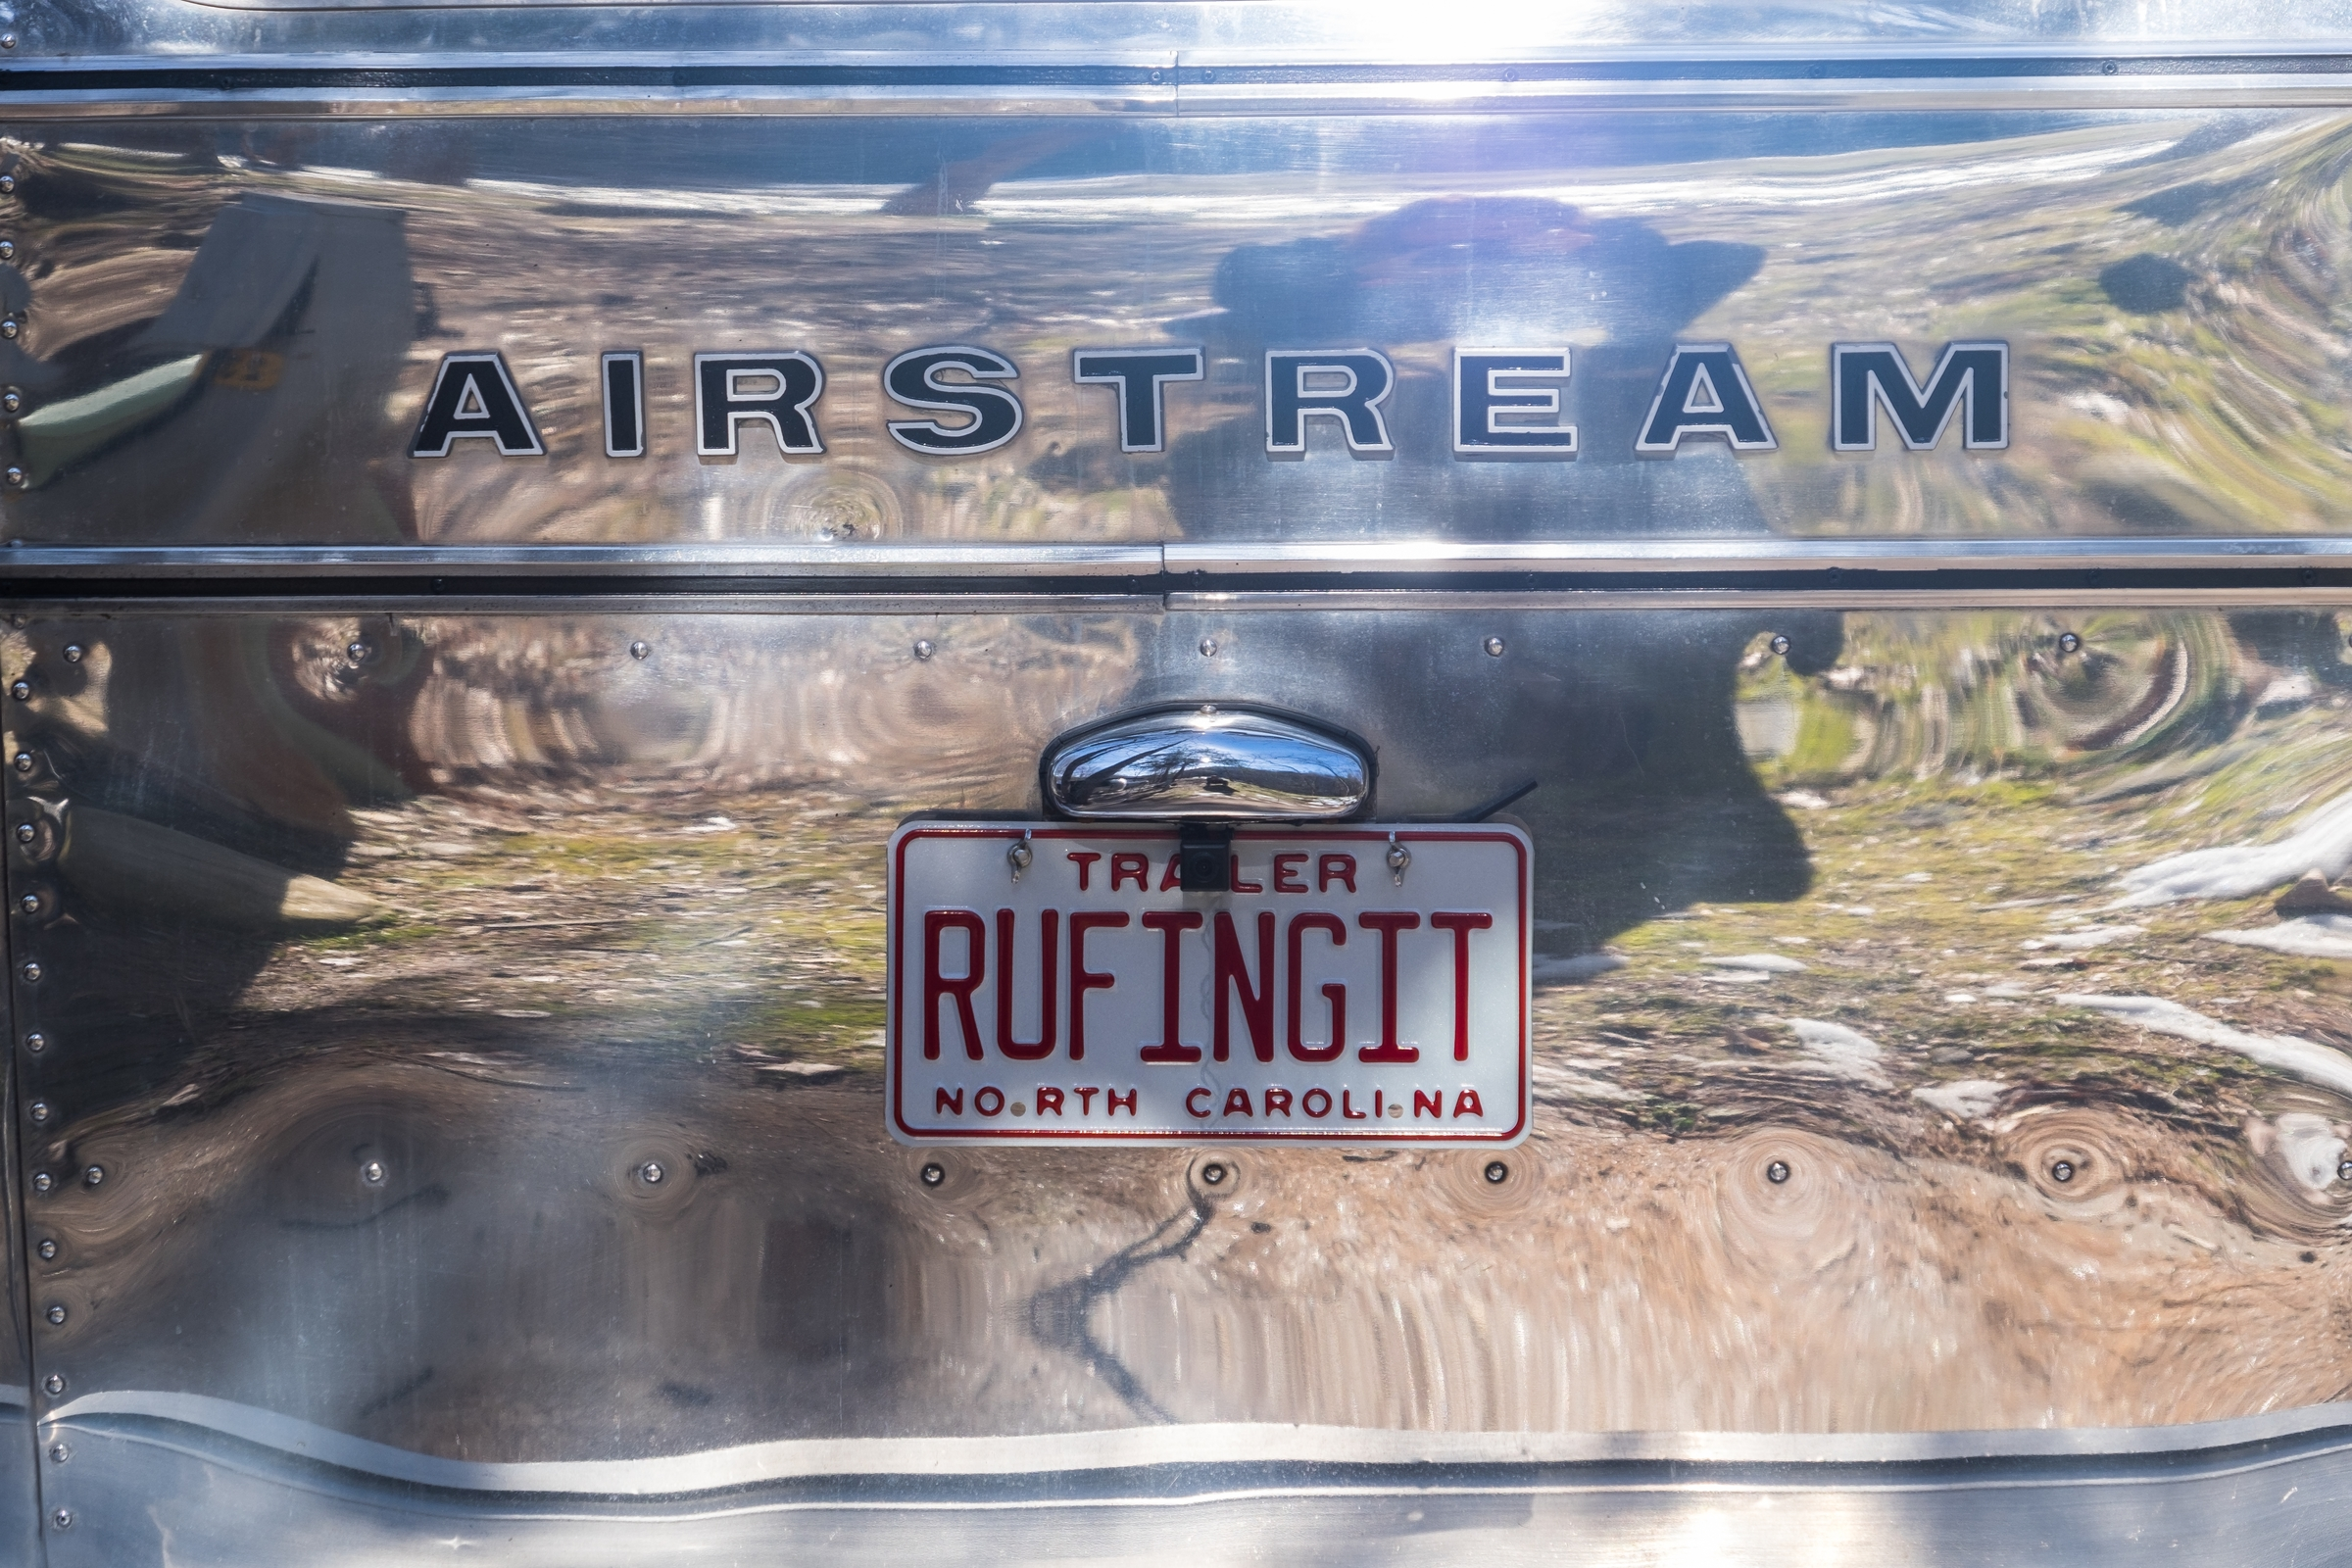 Pimped out Airstreams abound in this country. We found this restored 1970s beauty at the Great Smoky Mountains (and some cool Airstream Caravan friends too!)